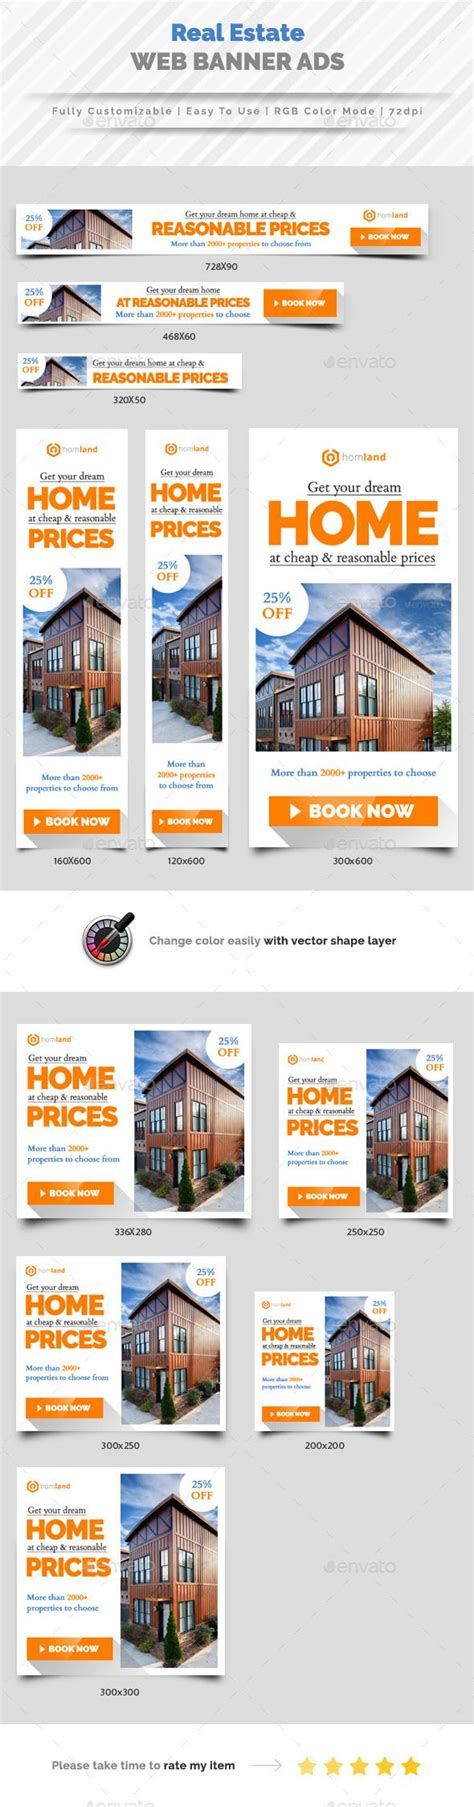 Banners Redes Sociales Template by Real Estate Agency Web Banner Ads Redes Sociales